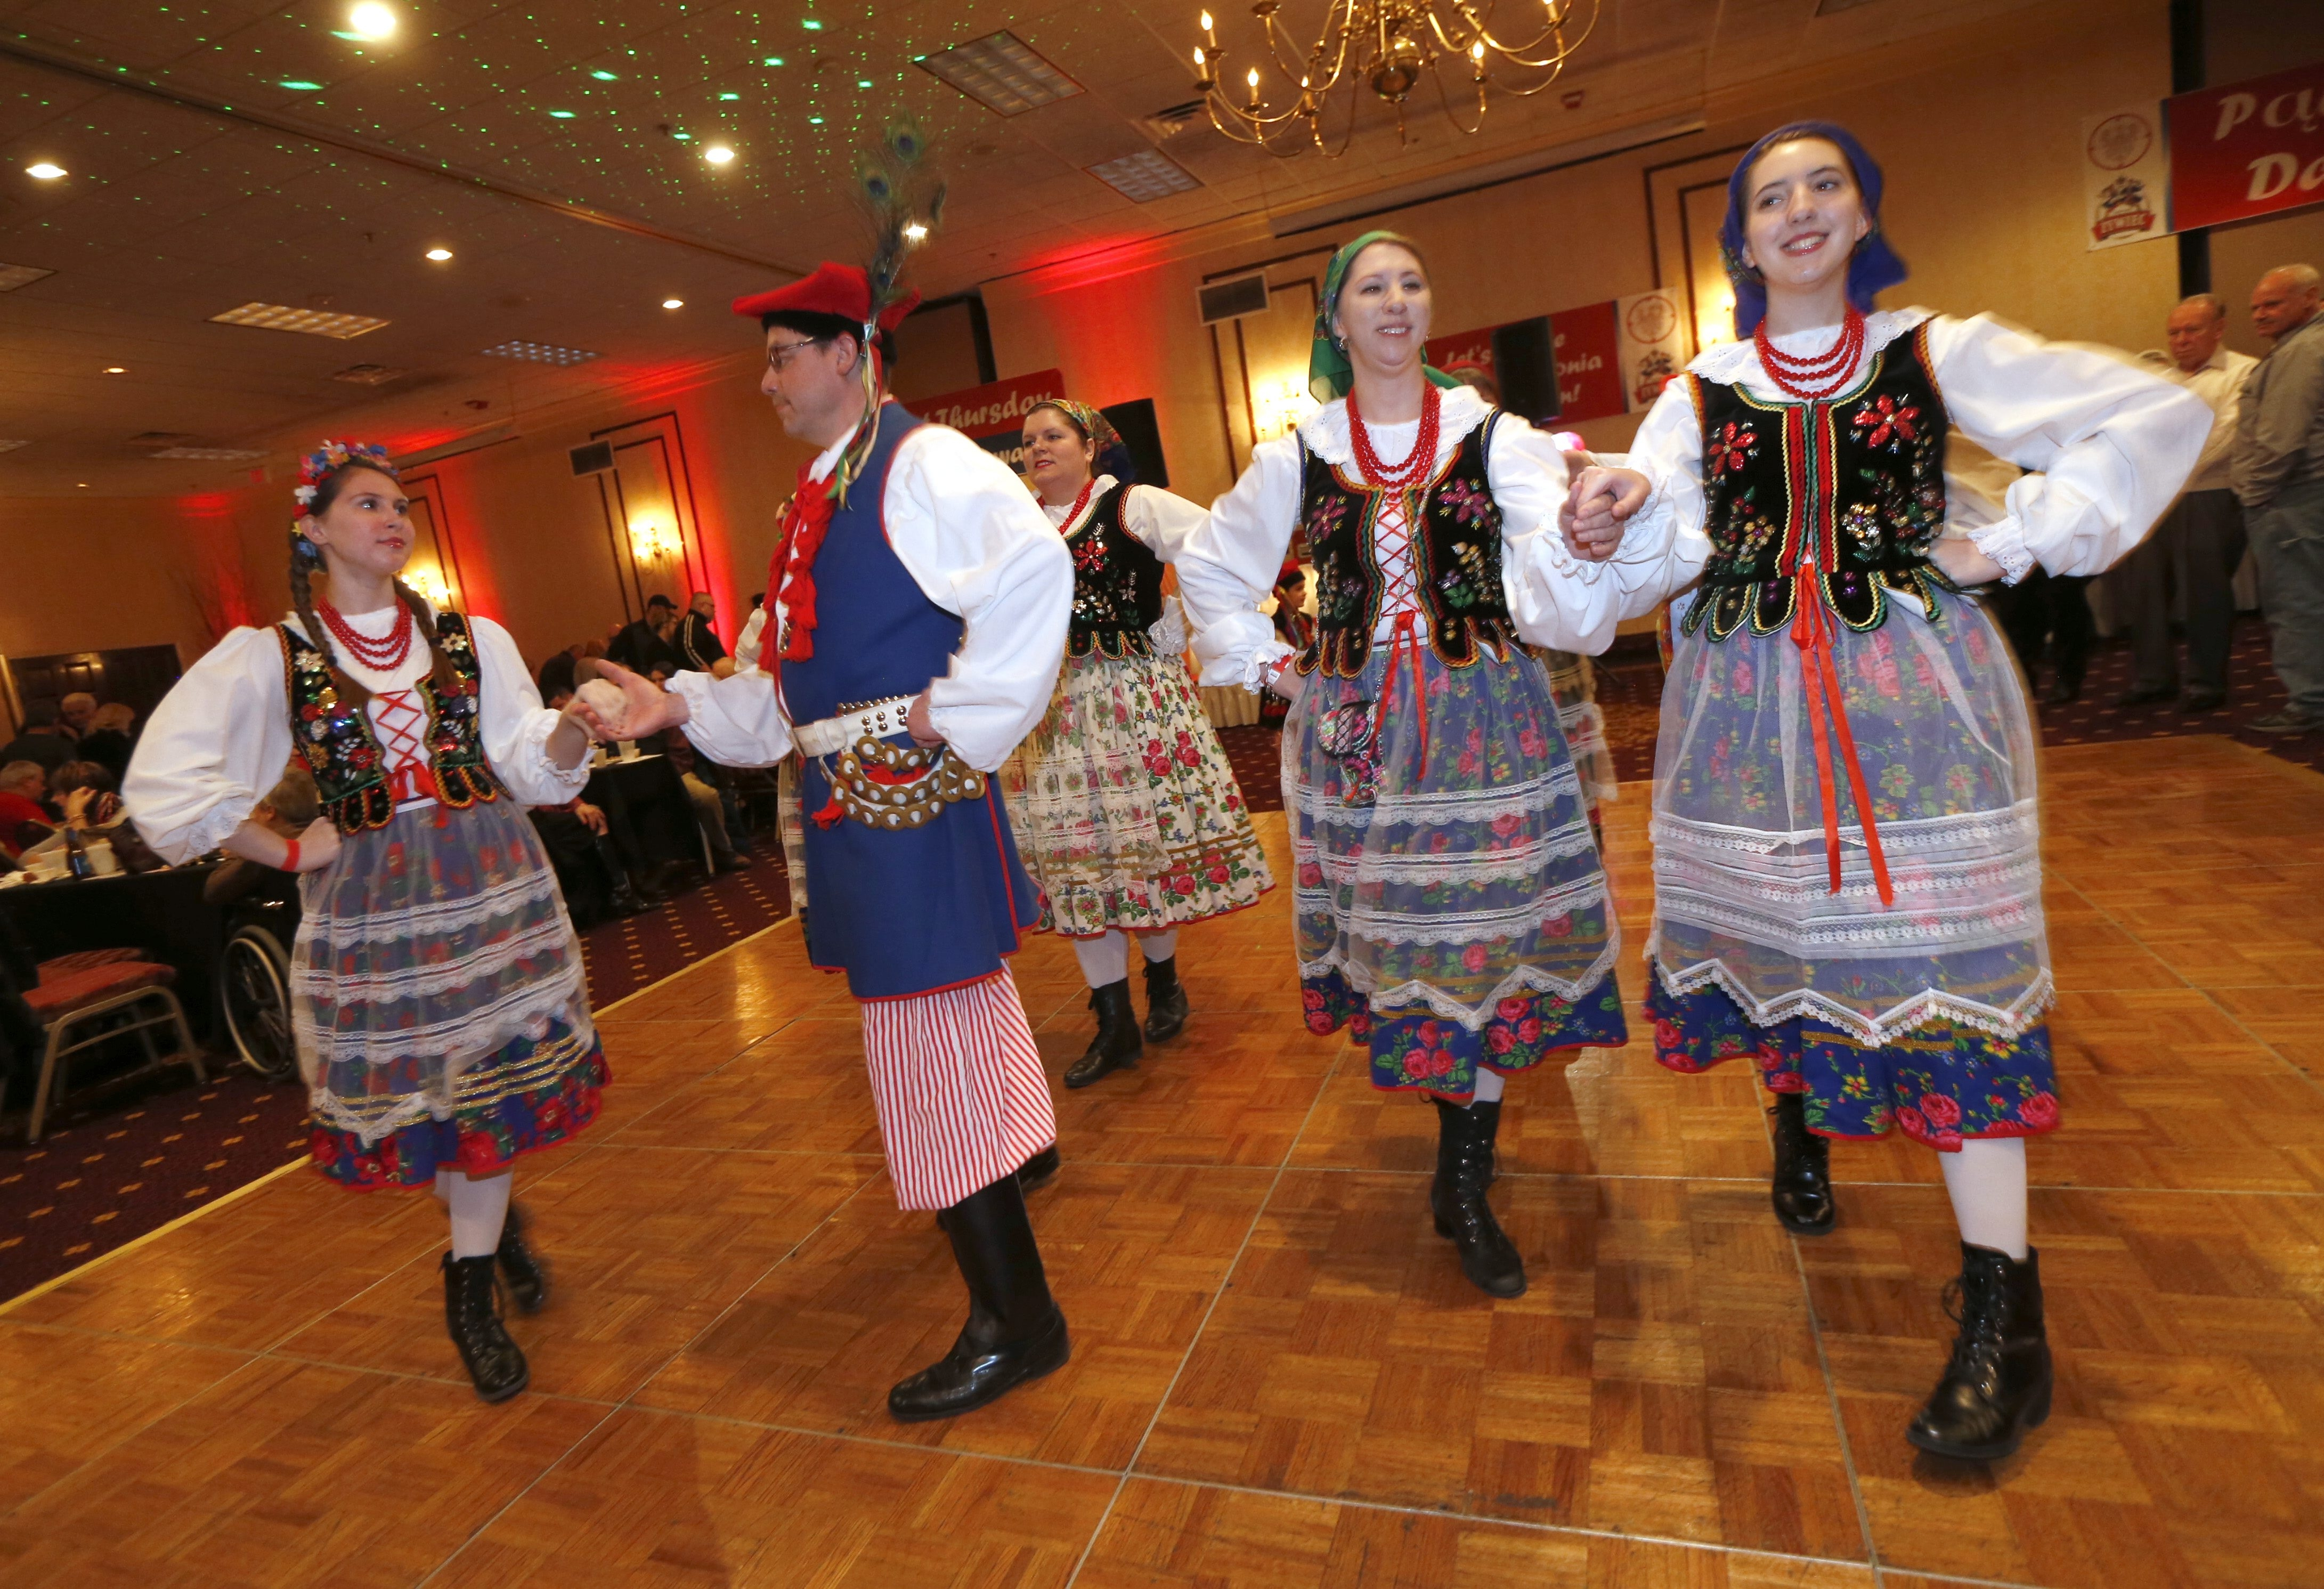 Members of the Harmony Polish Polka Ensemble perform a traditional walking dance during the pre-Lenten Fat Thursday celebration at the Millennium Hotel in Cheektowaga on Thursday.